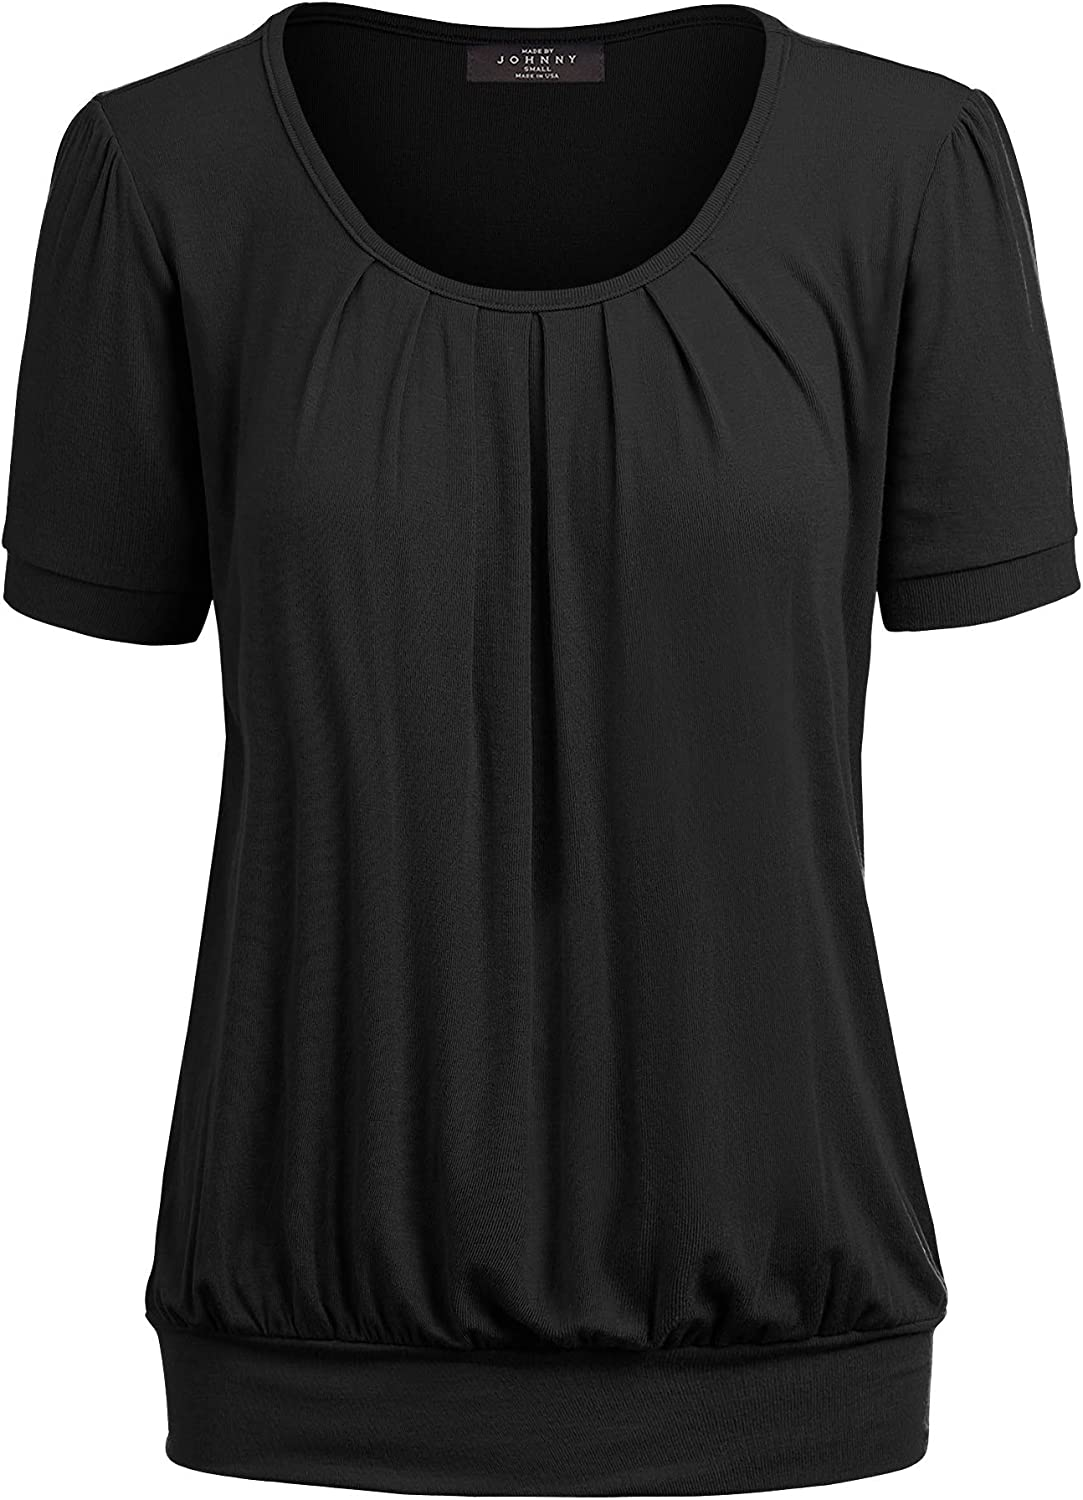 Made By Johnny Womens Scoop Neck Short Sleeve Front Pleated Blouse Tunic top S-3XL Plus Size Made in U.S.A.